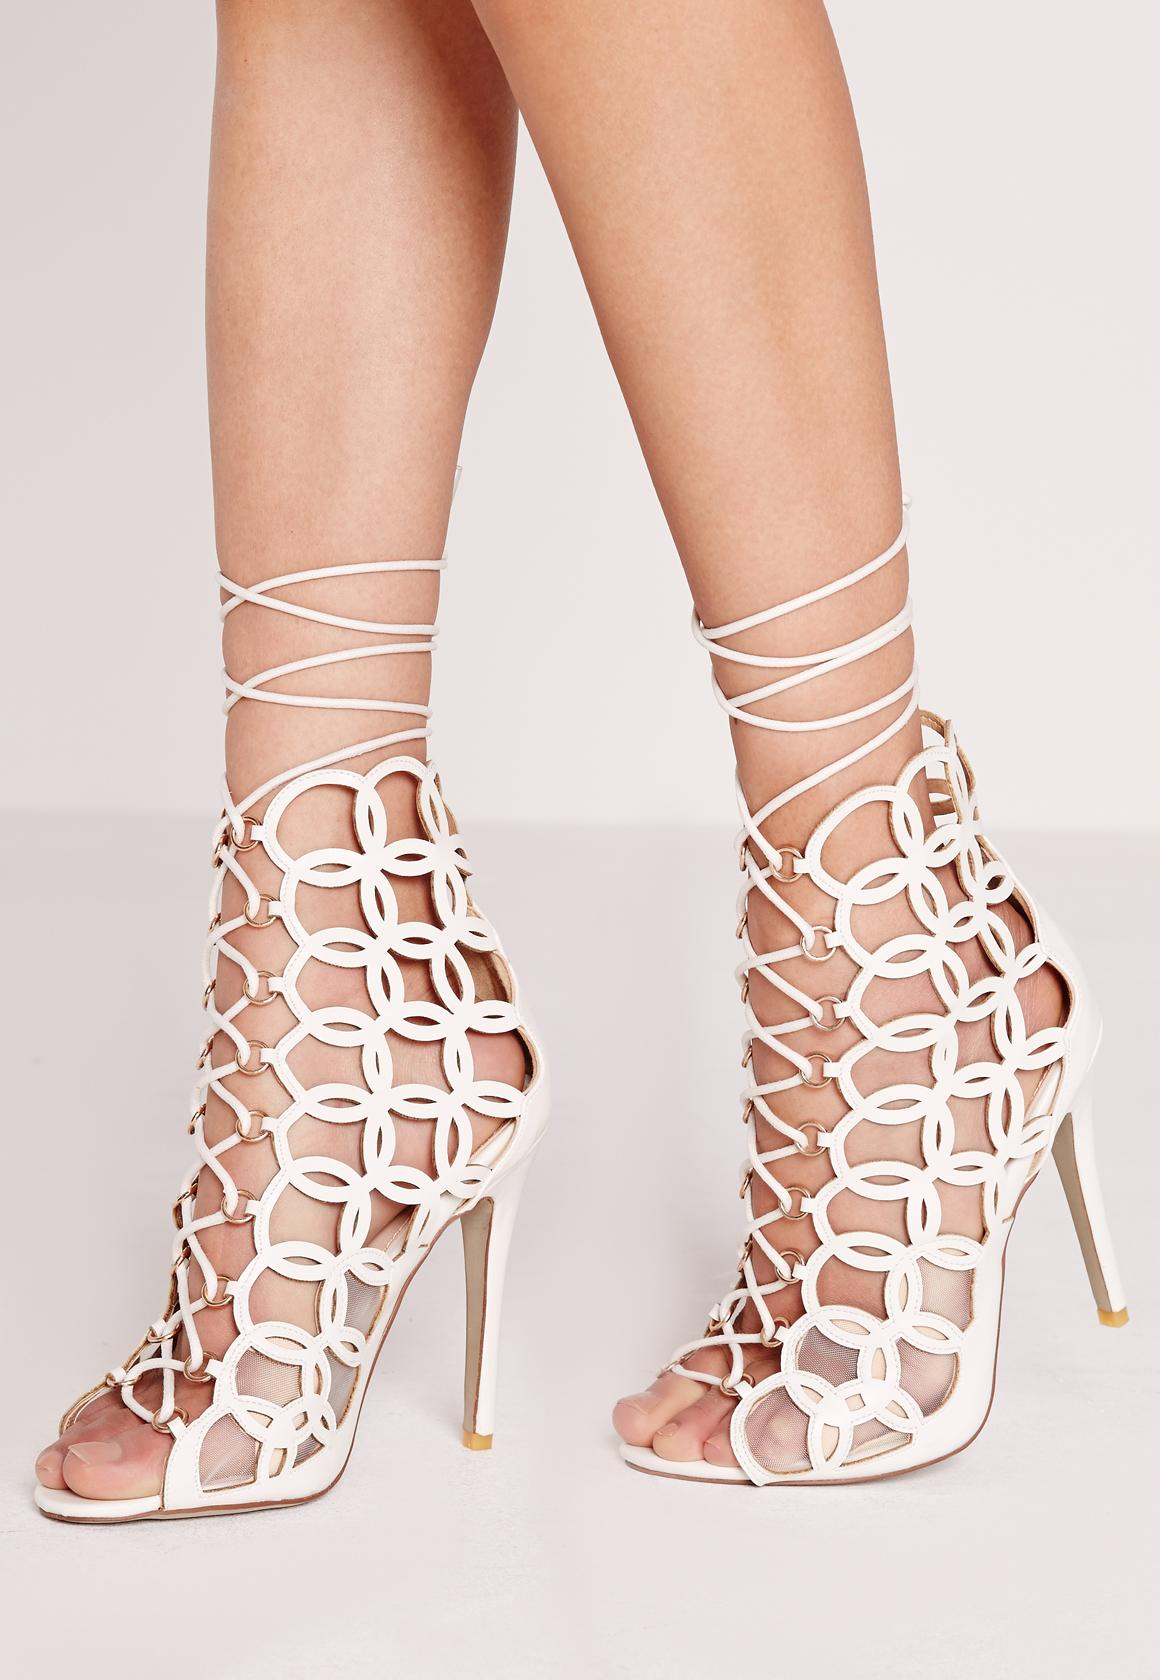 Circular Laser Cut Lace Up Heeled Sandals White | Missguided